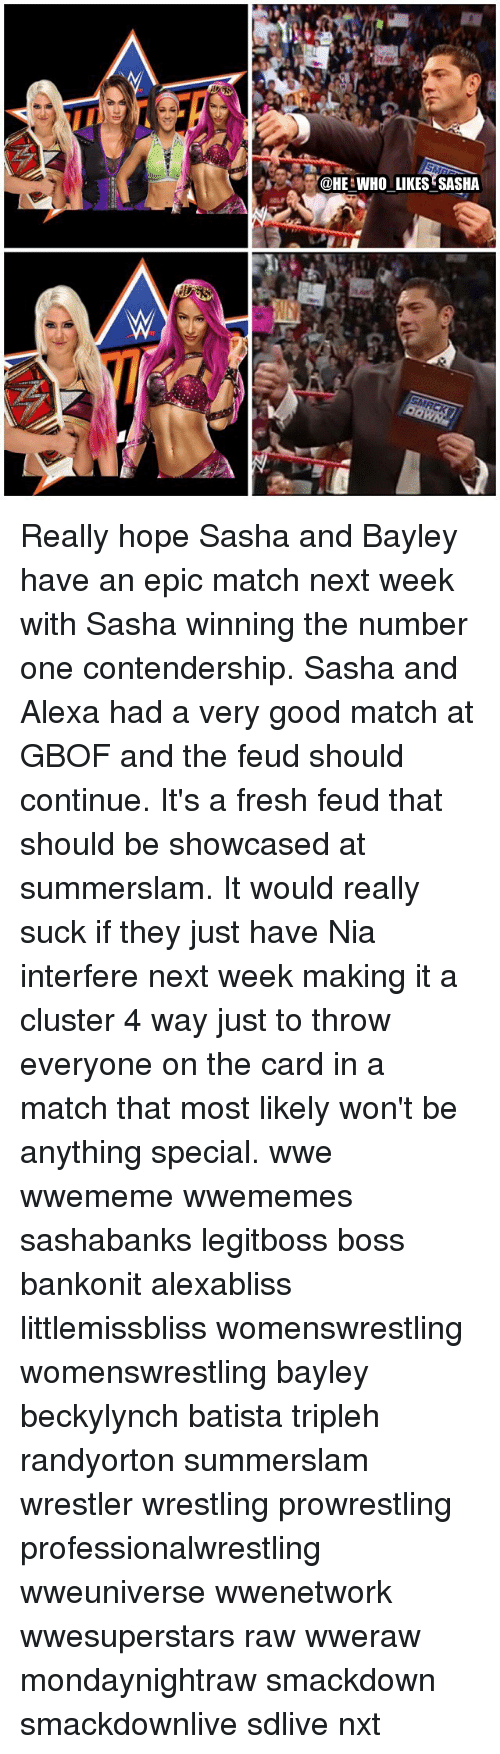 wrestlers: HE WHO LIKES?SASHA Really hope Sasha and Bayley have an epic match next week with Sasha winning the number one contendership. Sasha and Alexa had a very good match at GBOF and the feud should continue. It's a fresh feud that should be showcased at summerslam. It would really suck if they just have Nia interfere next week making it a cluster 4 way just to throw everyone on the card in a match that most likely won't be anything special. wwe wwememe wwememes sashabanks legitboss boss bankonit alexabliss littlemissbliss womenswrestling womenswrestling bayley beckylynch batista tripleh randyorton summerslam wrestler wrestling prowrestling professionalwrestling wweuniverse wwenetwork wwesuperstars raw wweraw mondaynightraw smackdown smackdownlive sdlive nxt